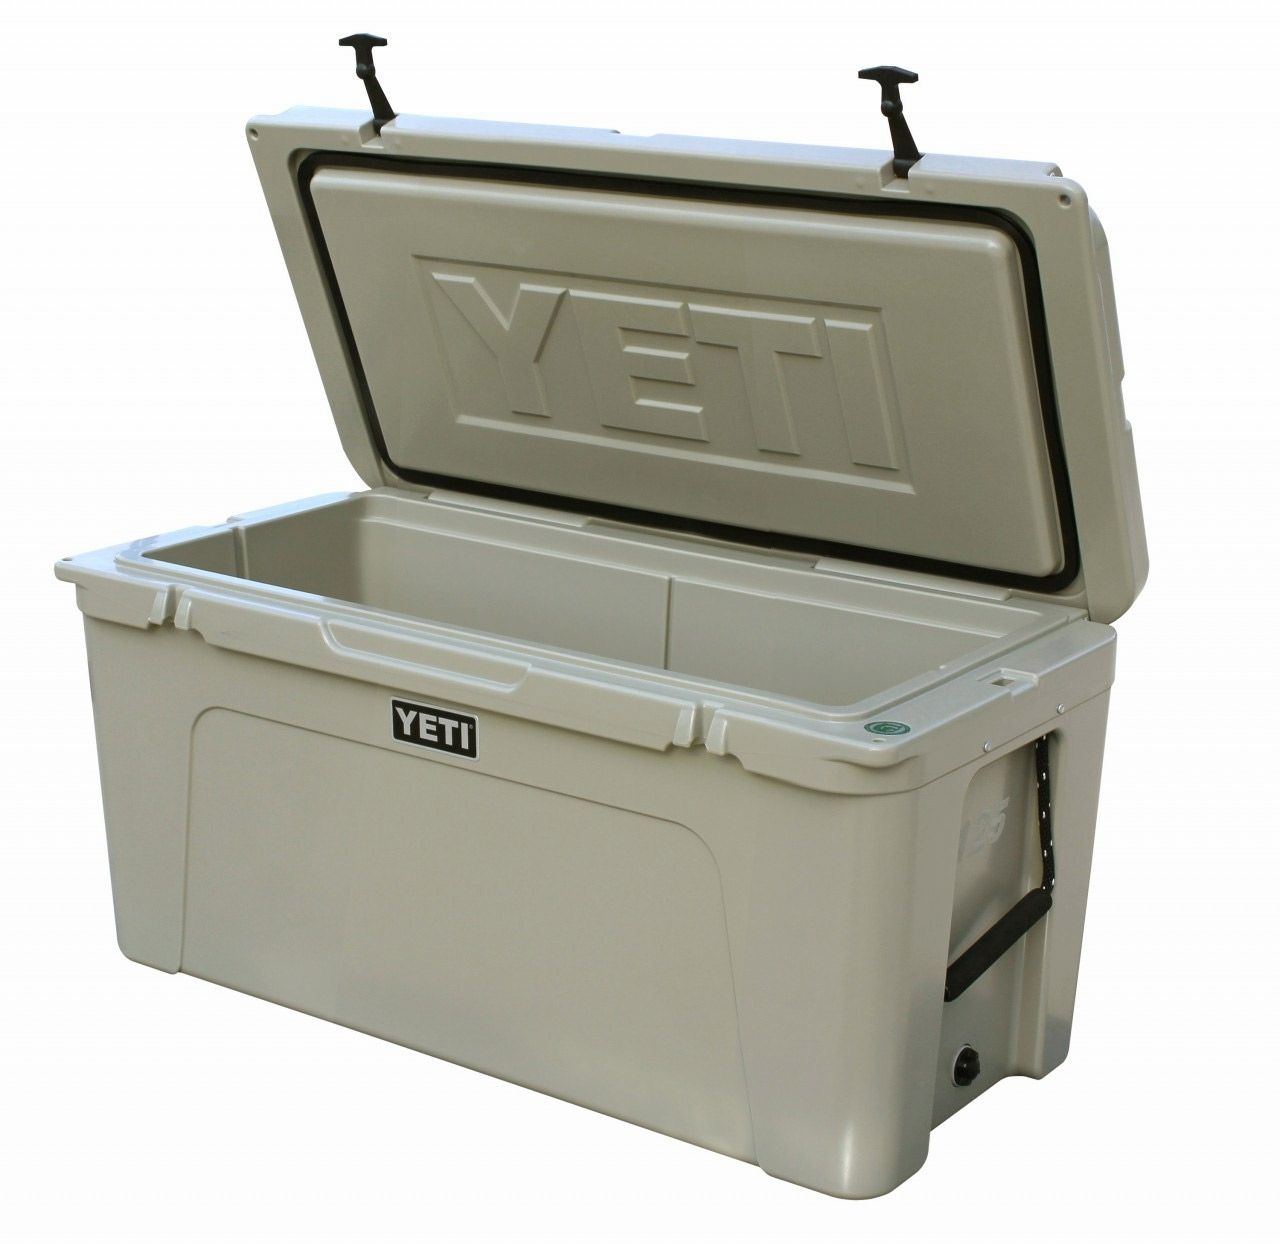 Yeti Tundra 125 Quart Coolers Tackledirect